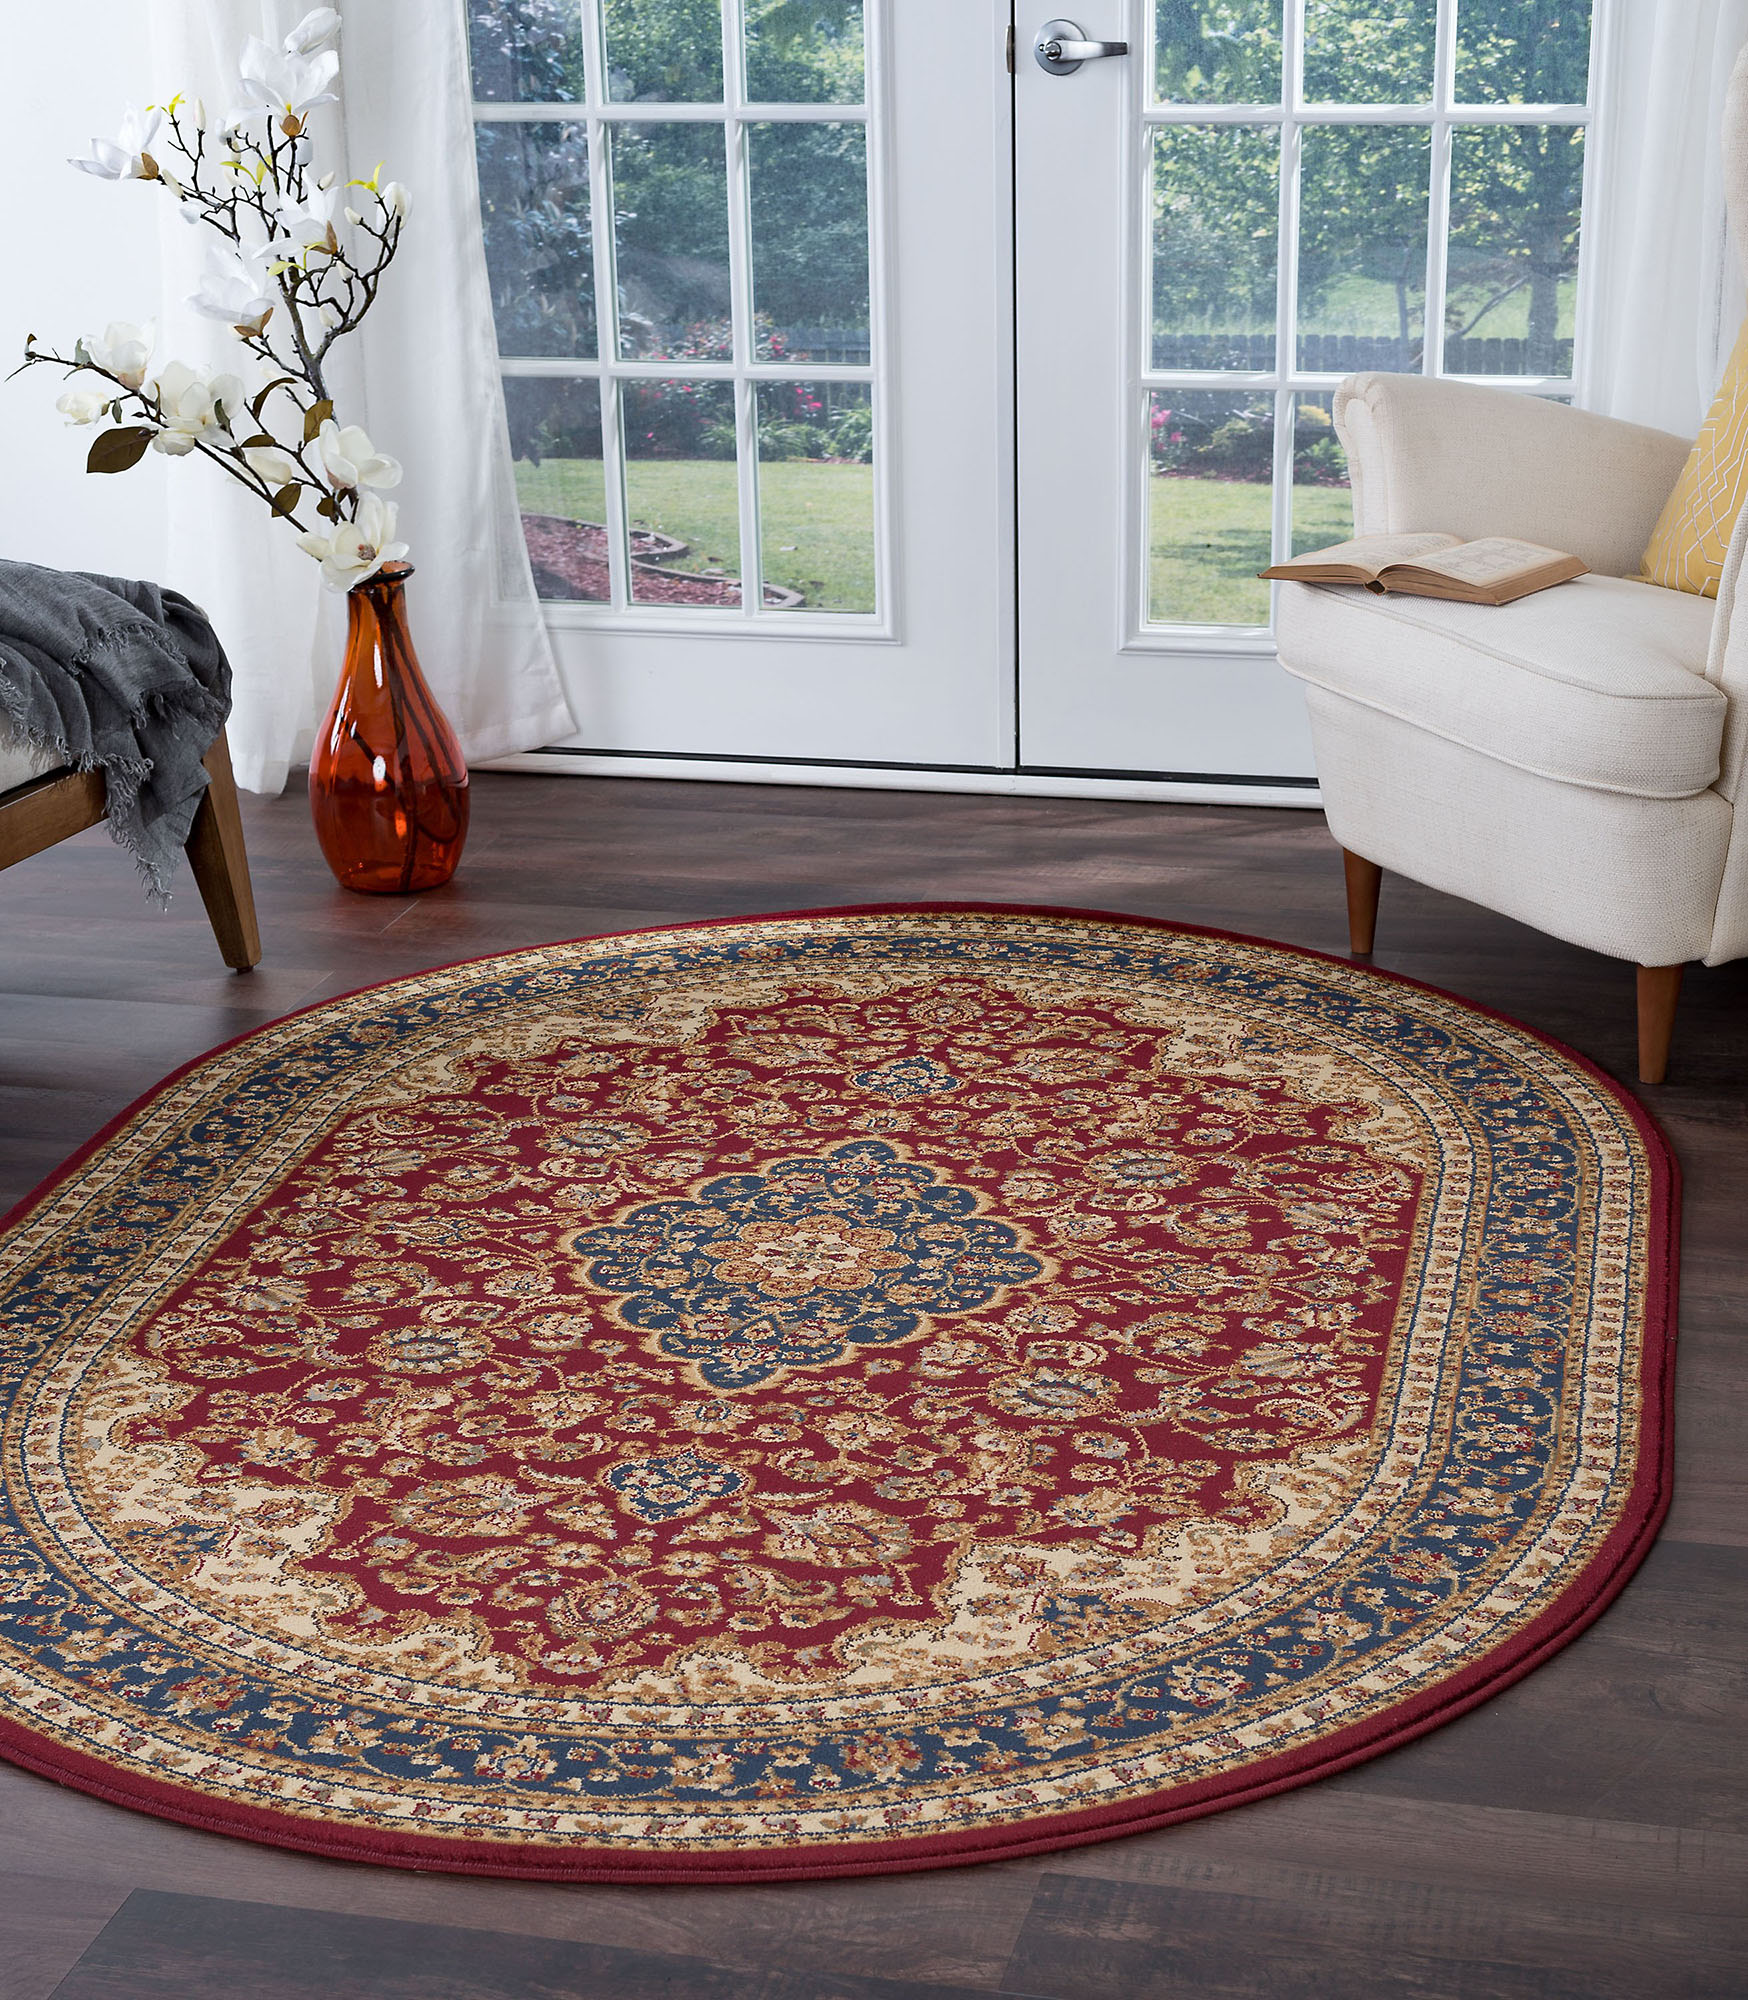 Details About Red Traditional Oriental 6 Oval Area Rug Bordered Carpet Actual 6 7 X 9 6